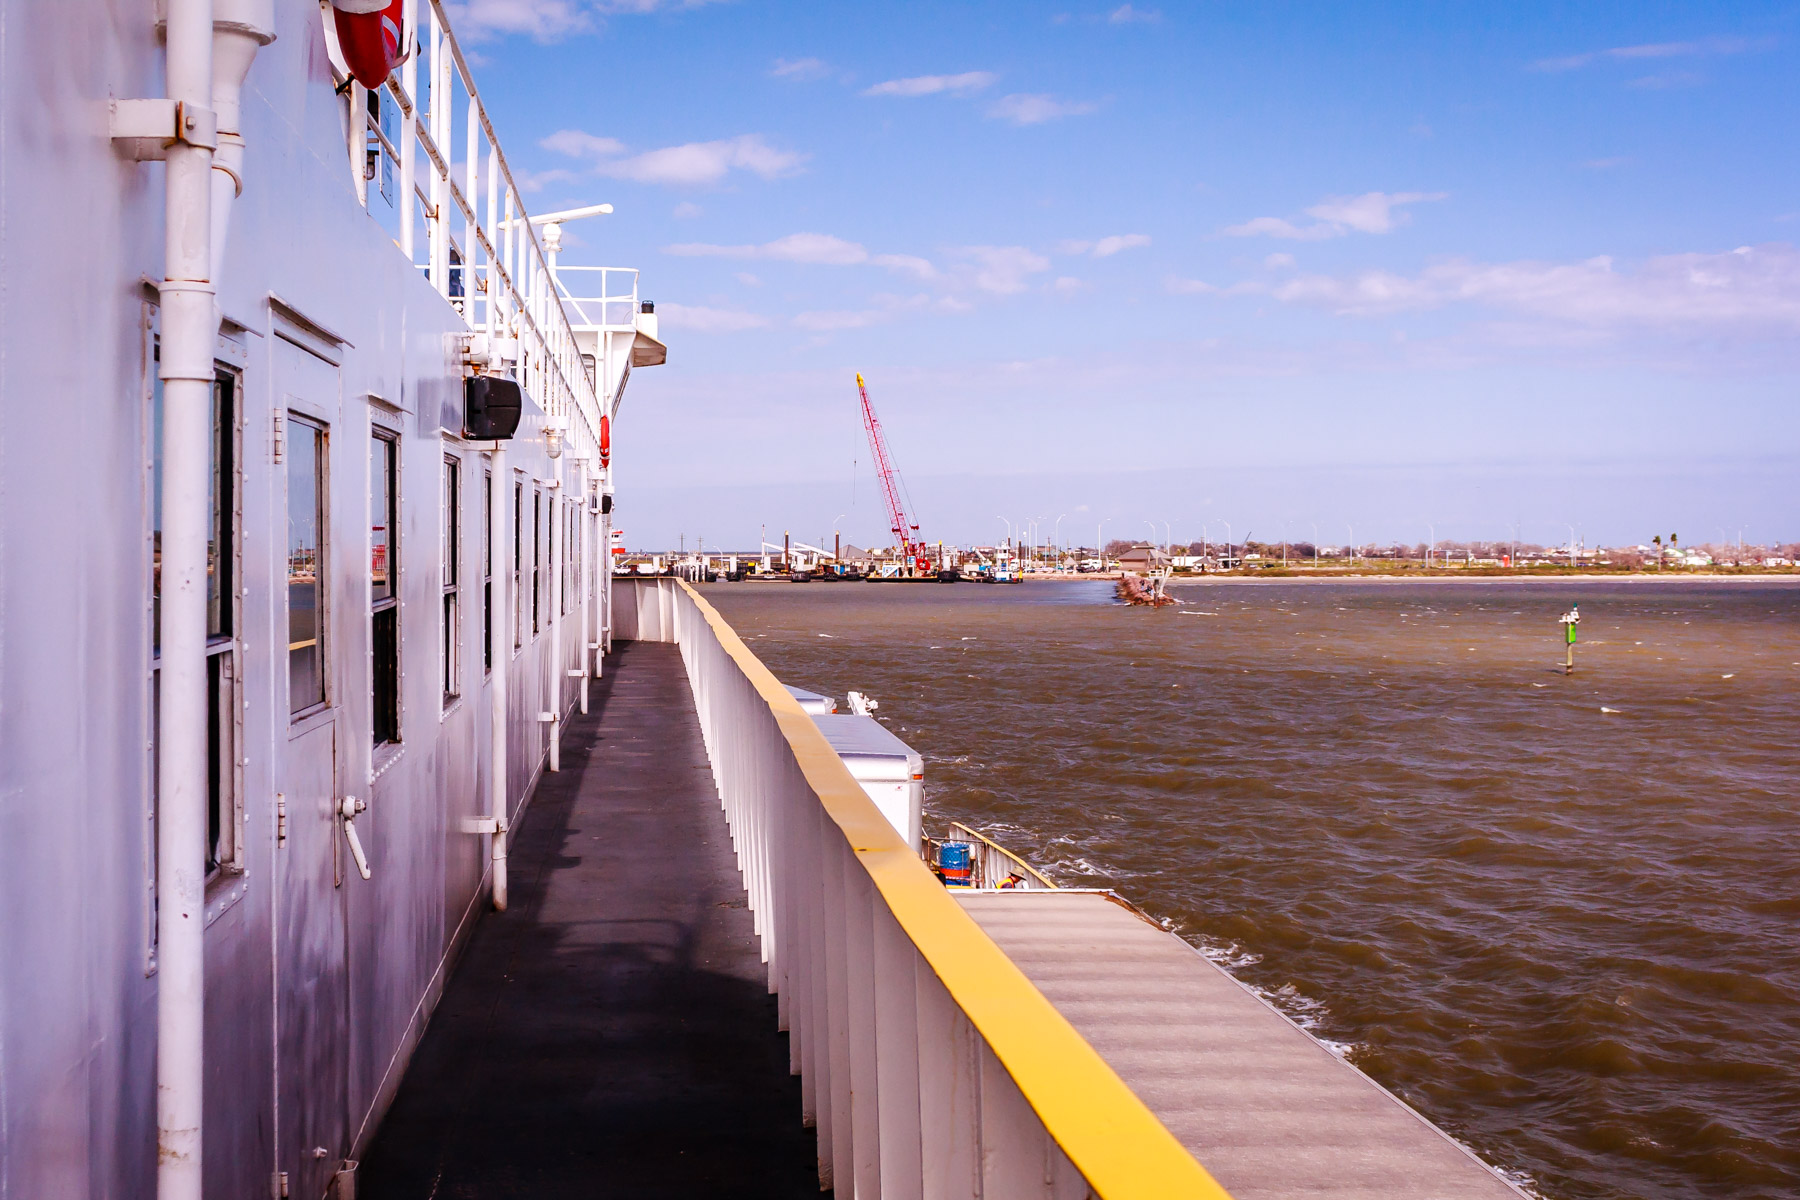 The Galveston-Port Bolivar ferry prepares to dock in Galveston.